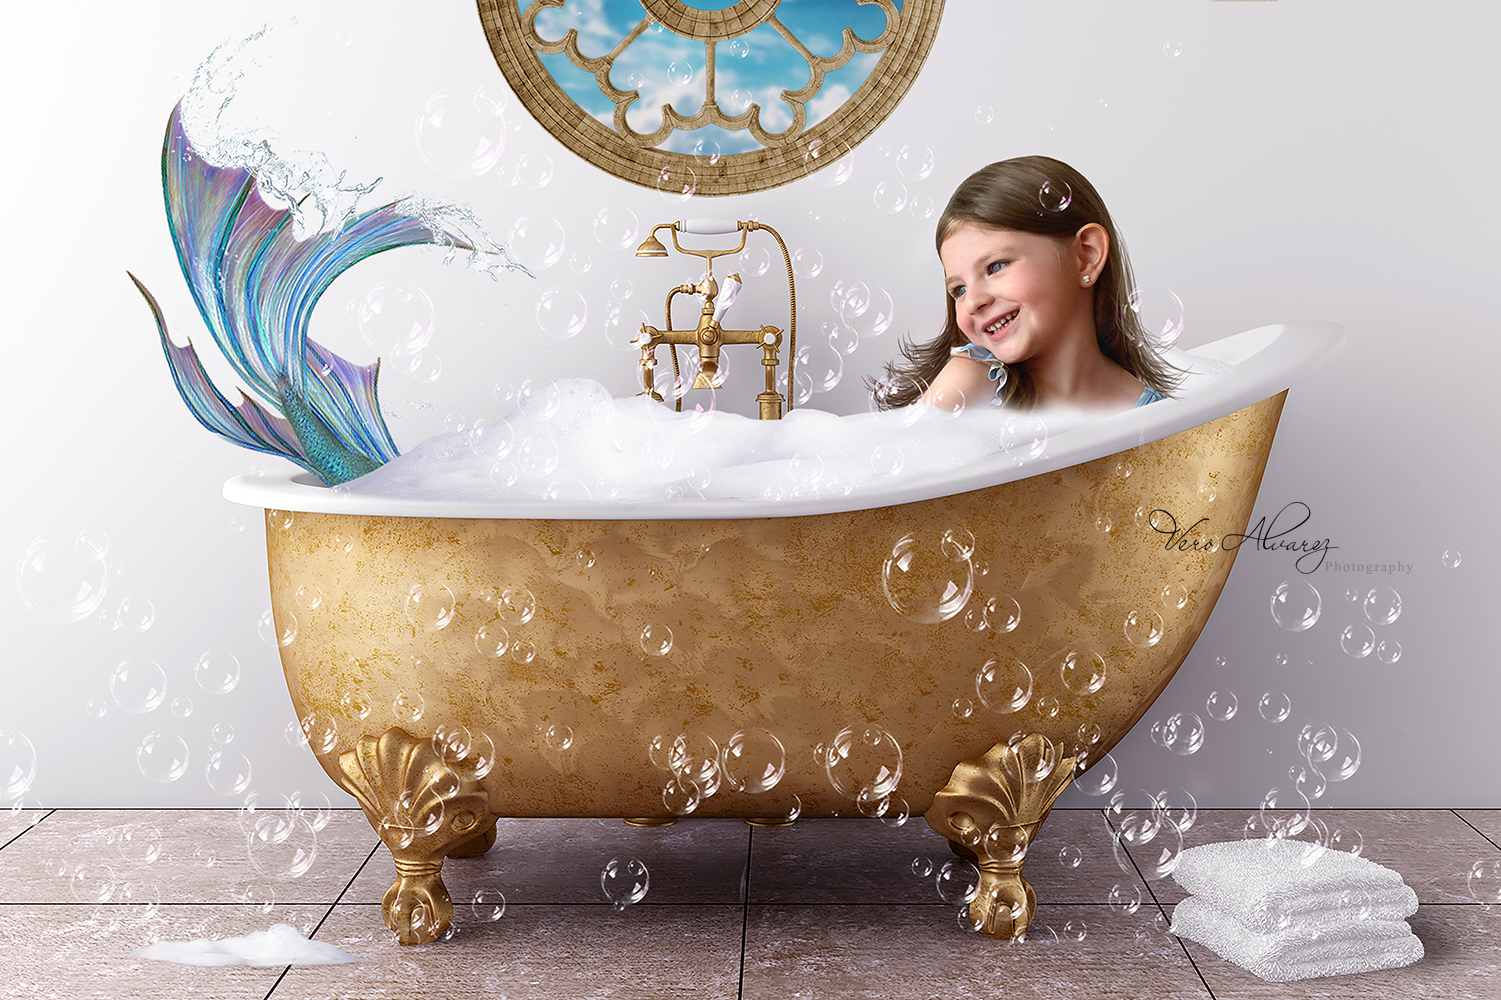 Bathtub Mermaid